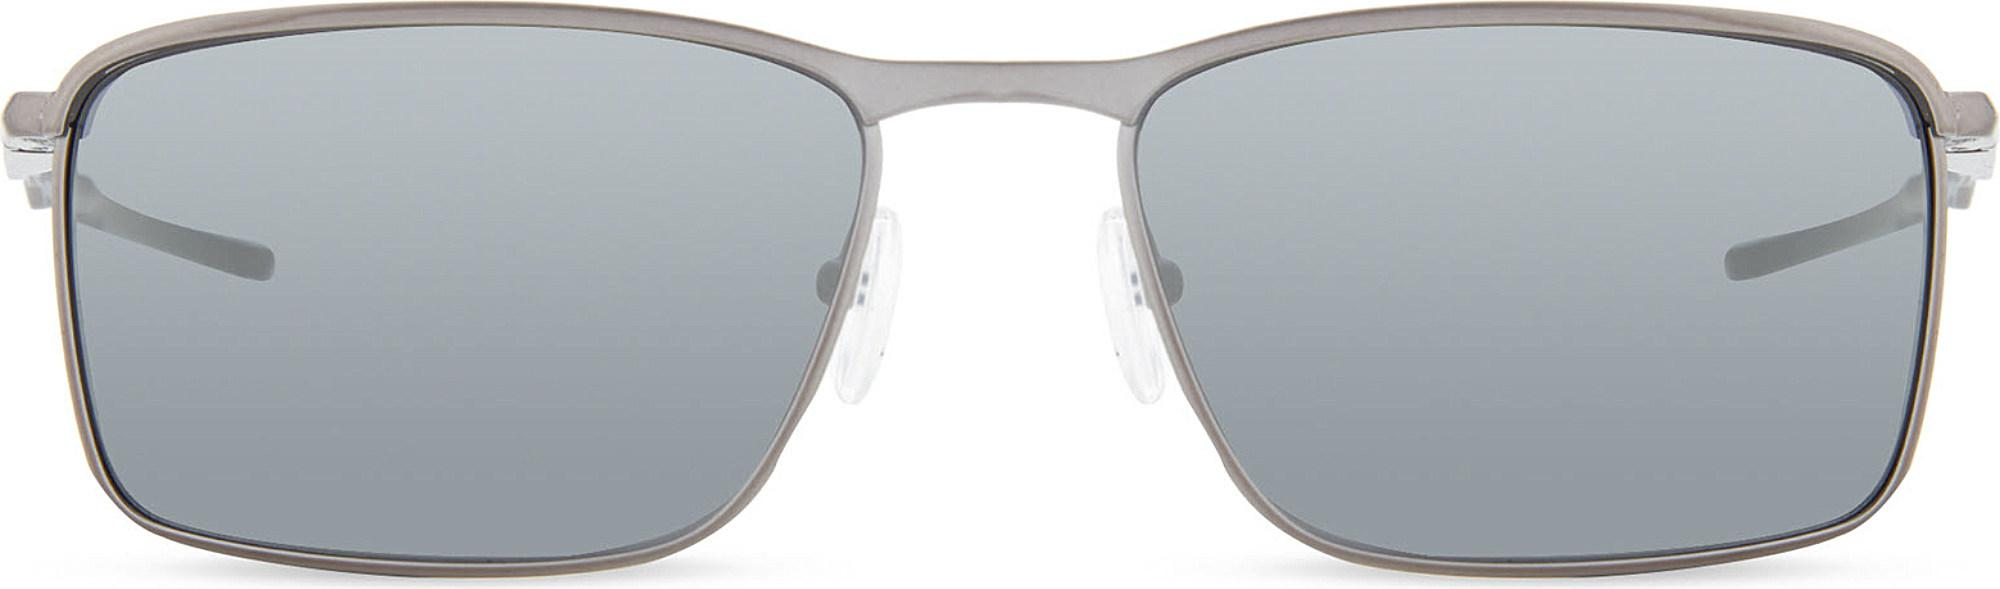 4090c497b1a Lyst - Oakley Oo4106 Conductor 6 Sunglasses in Gray for Men